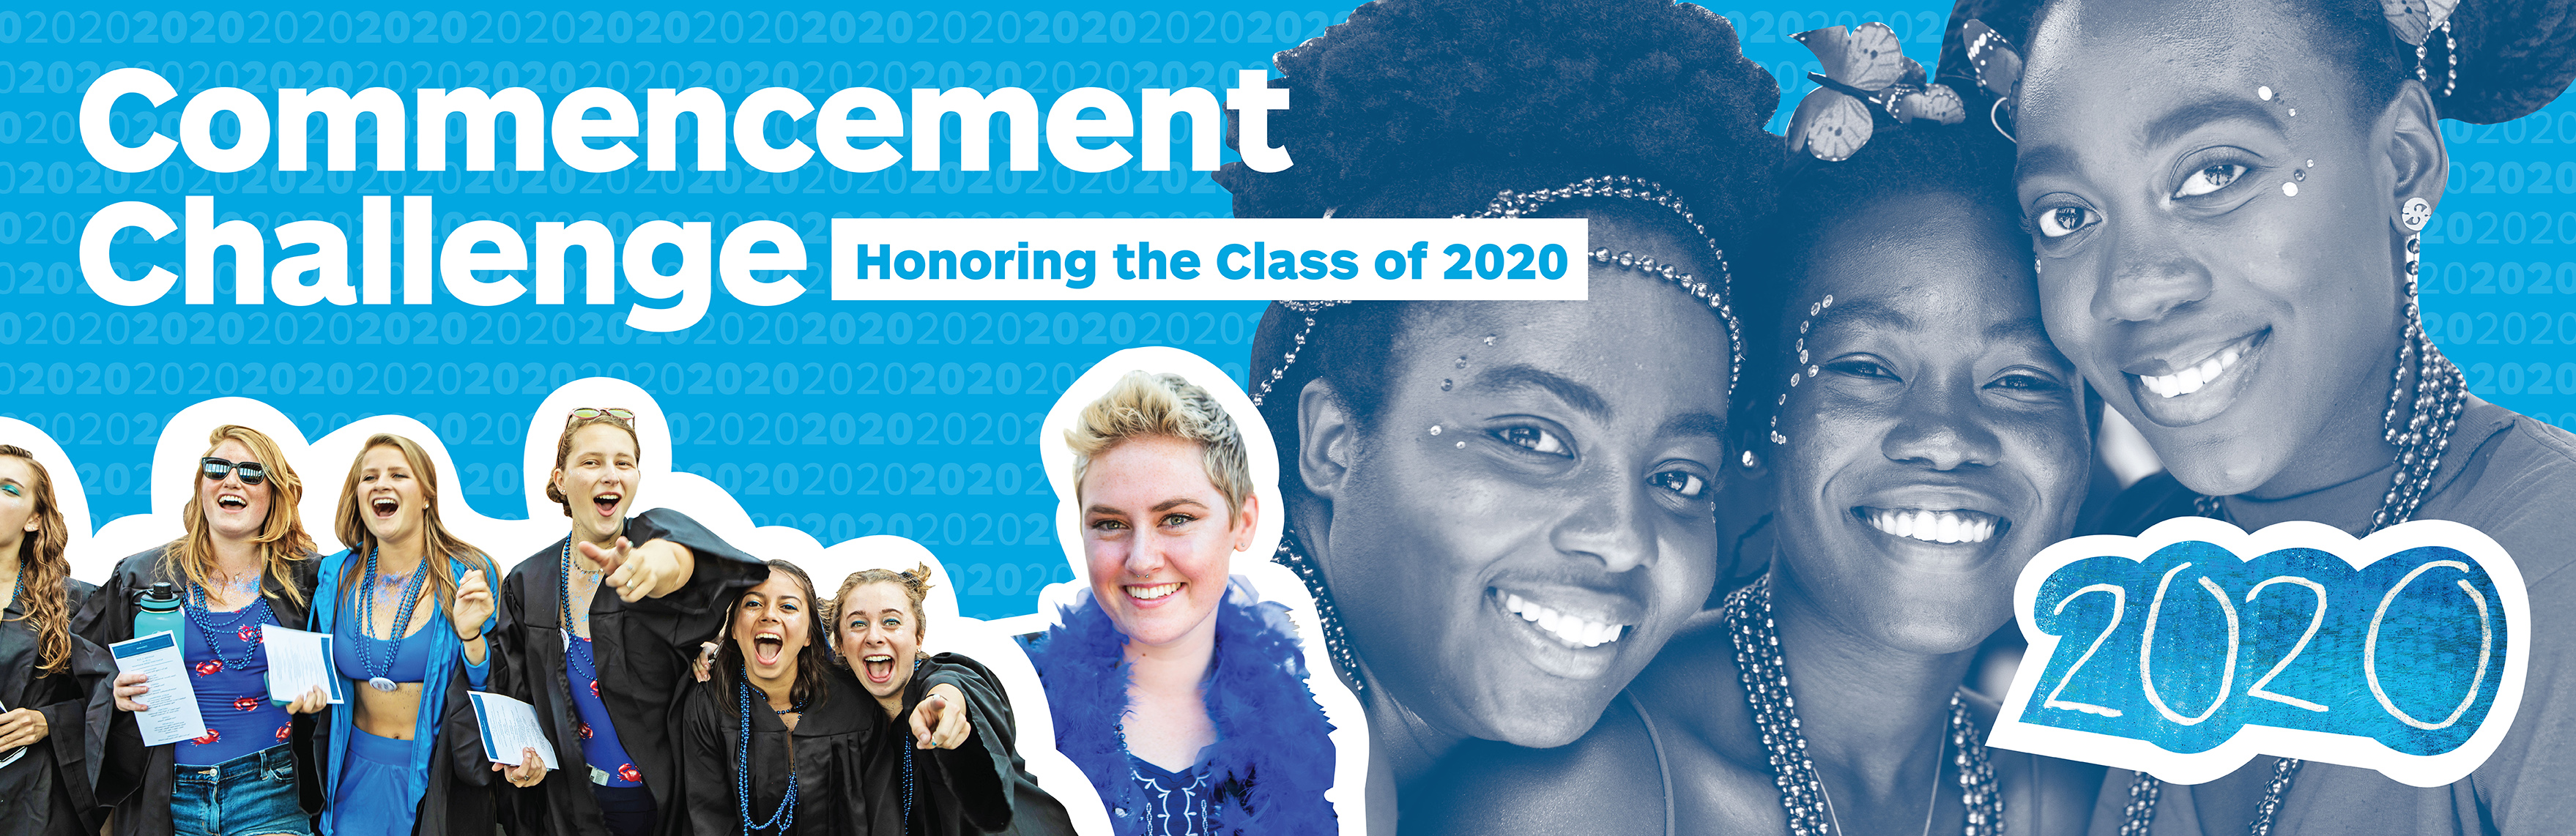 Commencement Challenge: Honoring the class of 2020